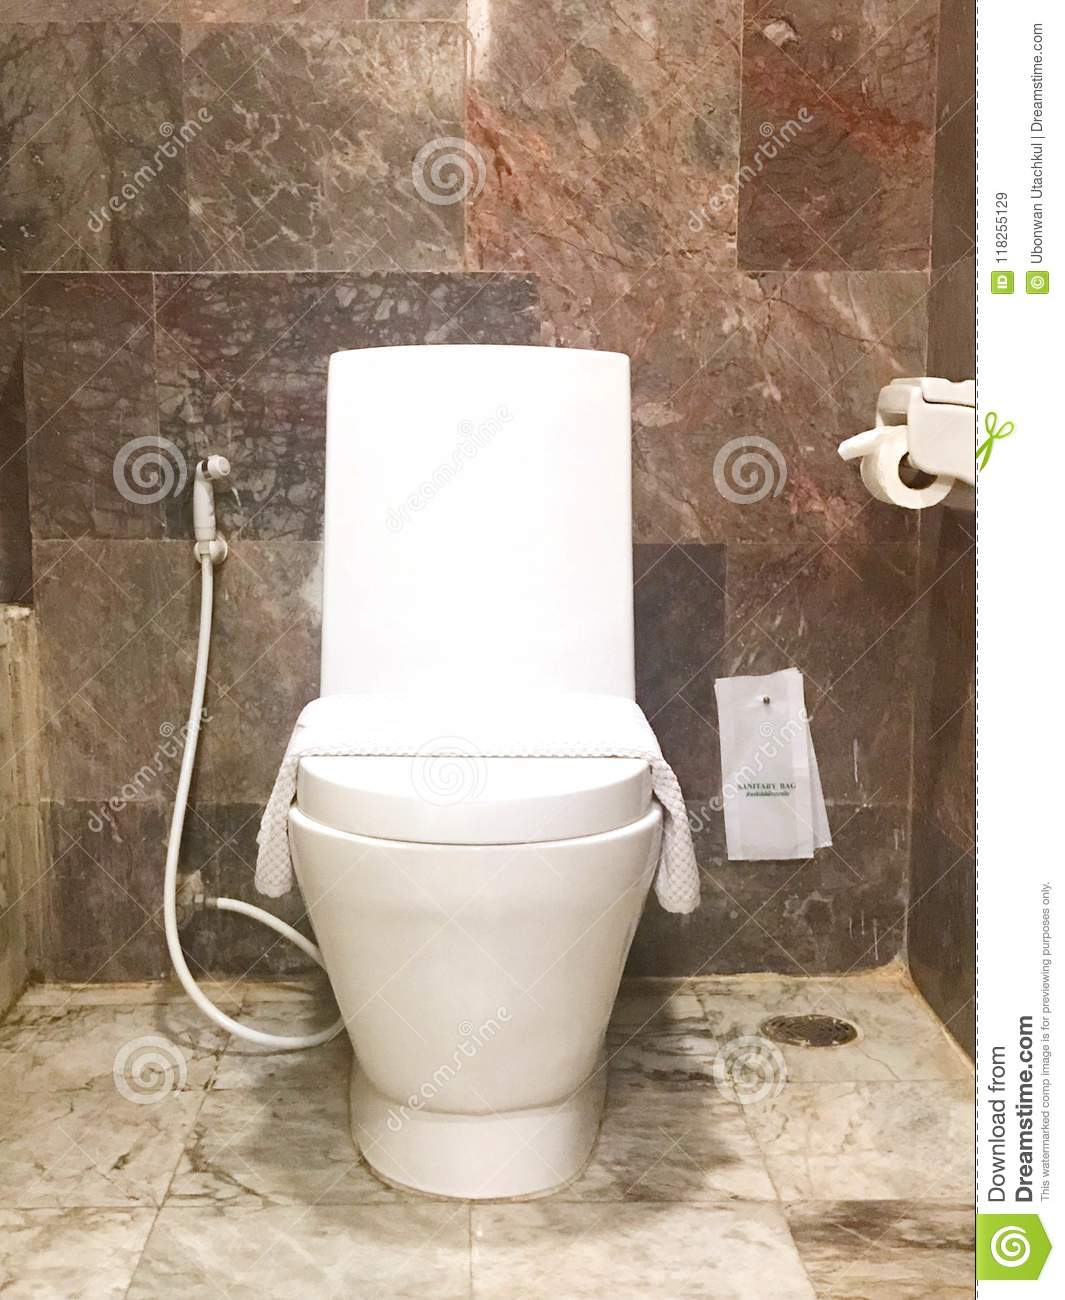 White Modern Toilet Bowl Against Brown Marble Wall Stock Image Image Of House Wash 118255129